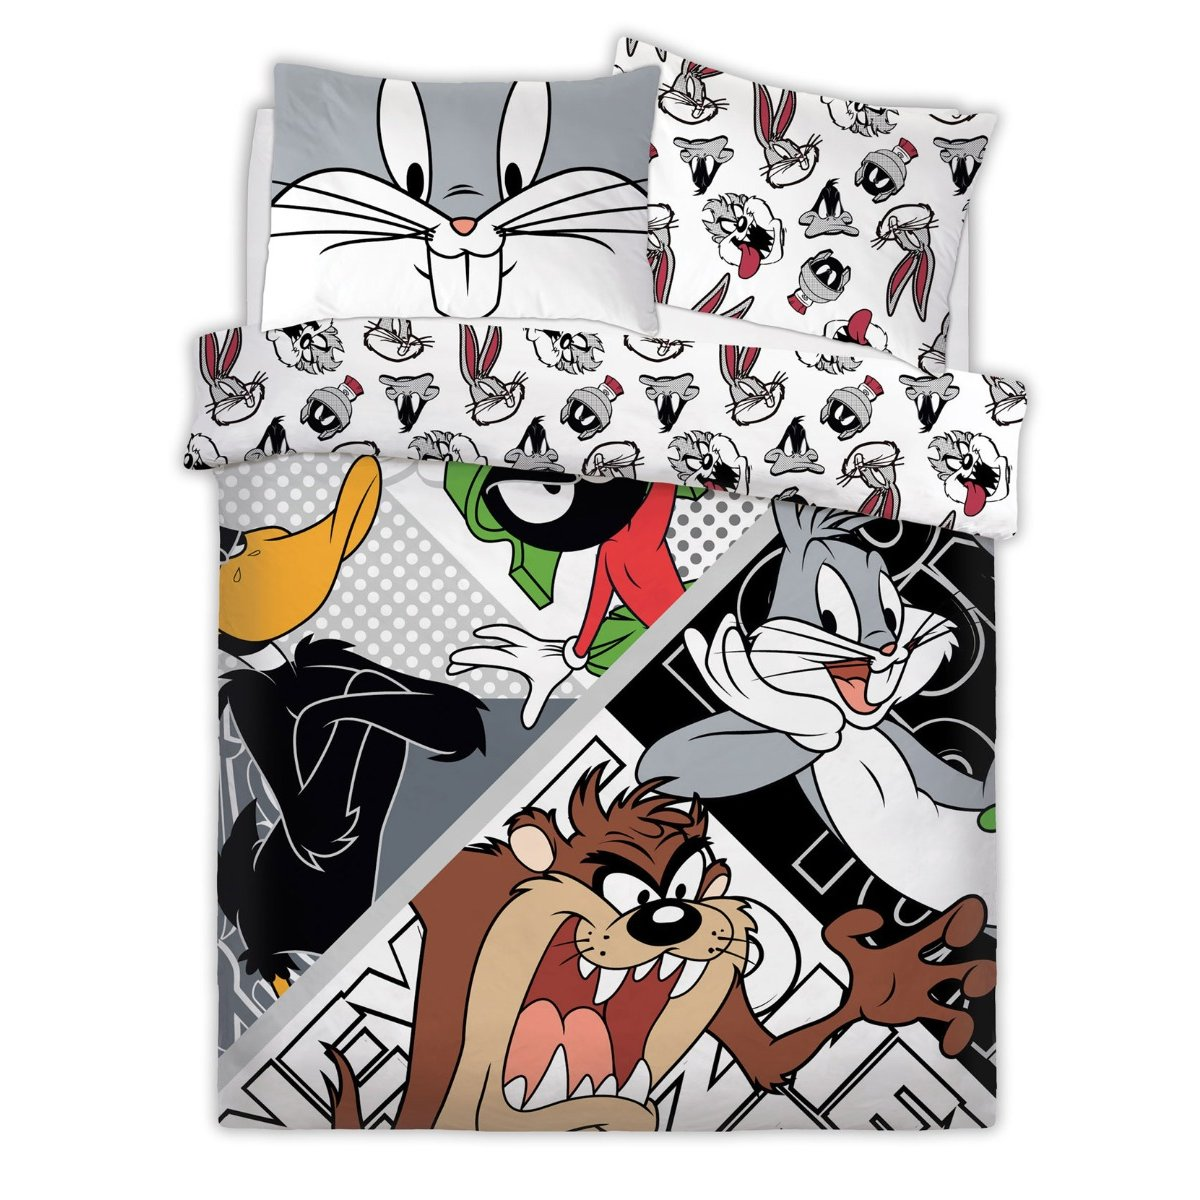 Looney Tunes Looney Crew Bedding - Reversible Duvet Cover and Pillowcase Set